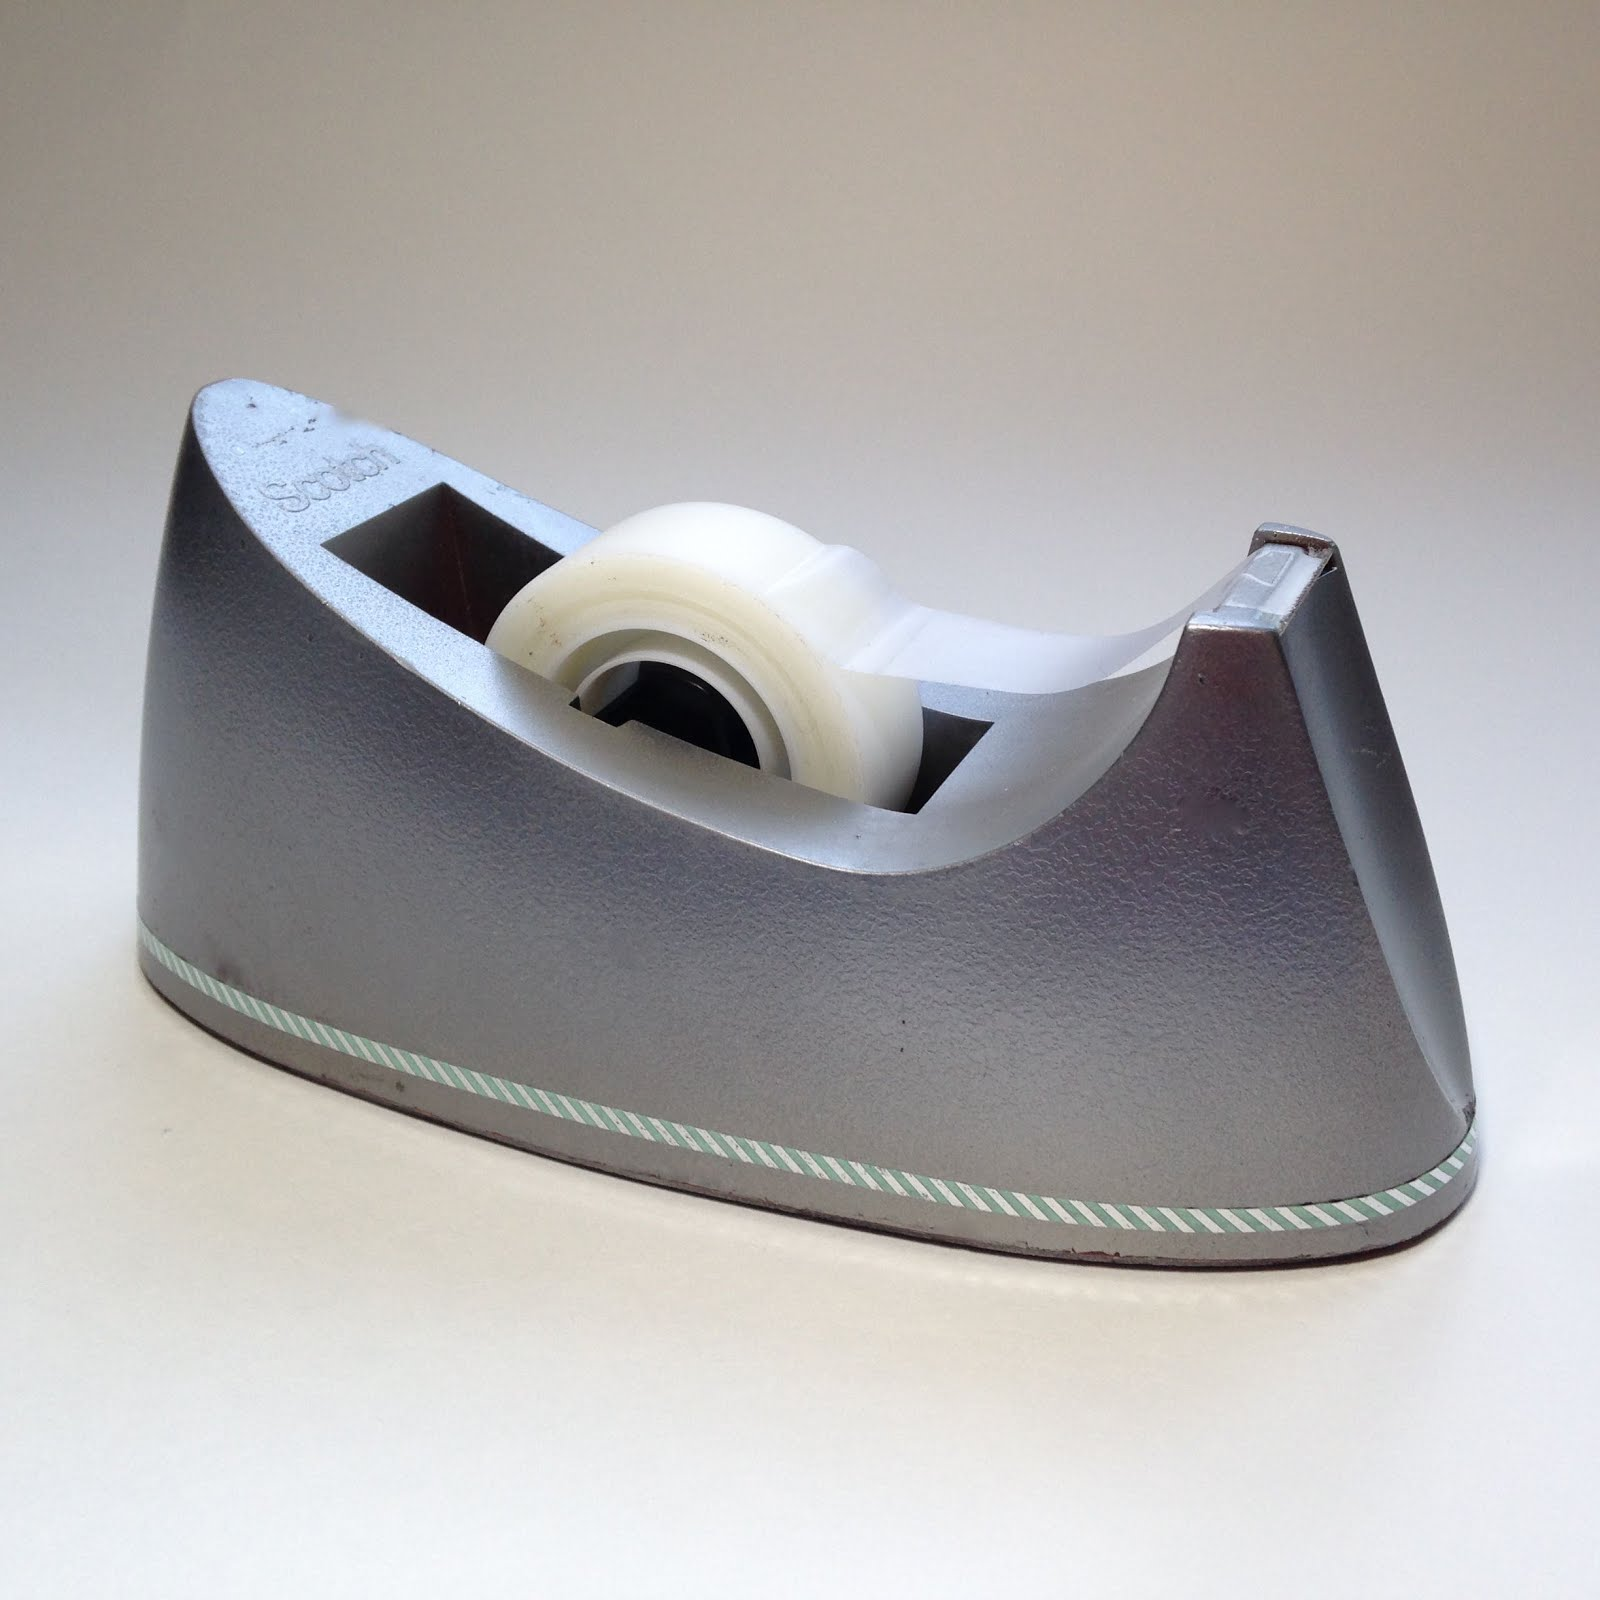 Makeover the Old Tape Dispenser